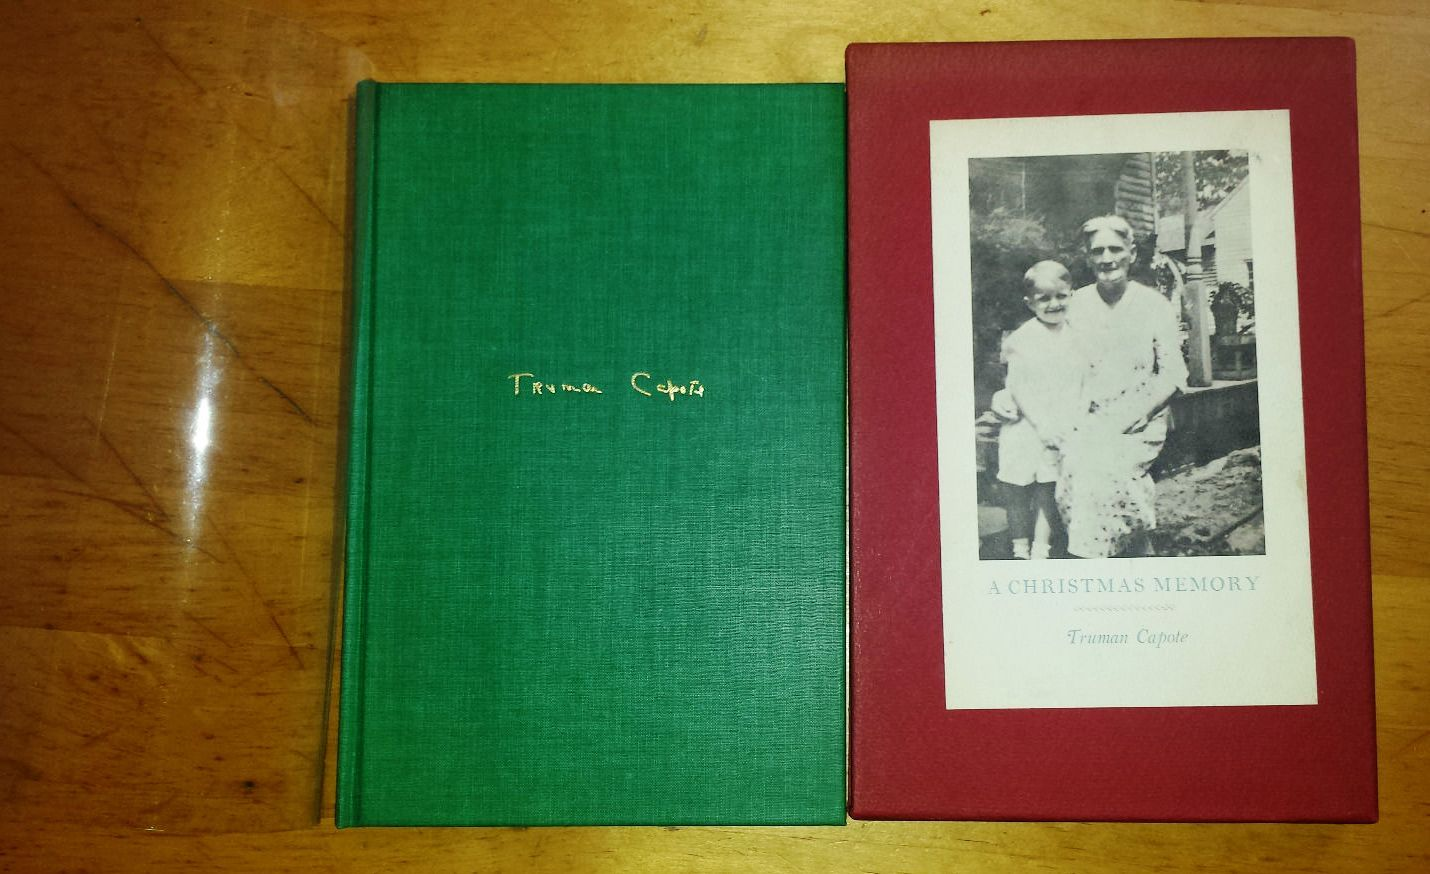 Truman Capote A Christmas Memory.A Christmas Memory By Truman Capote Signed First Edition 1966 From Charles Agvent And Biblio Com